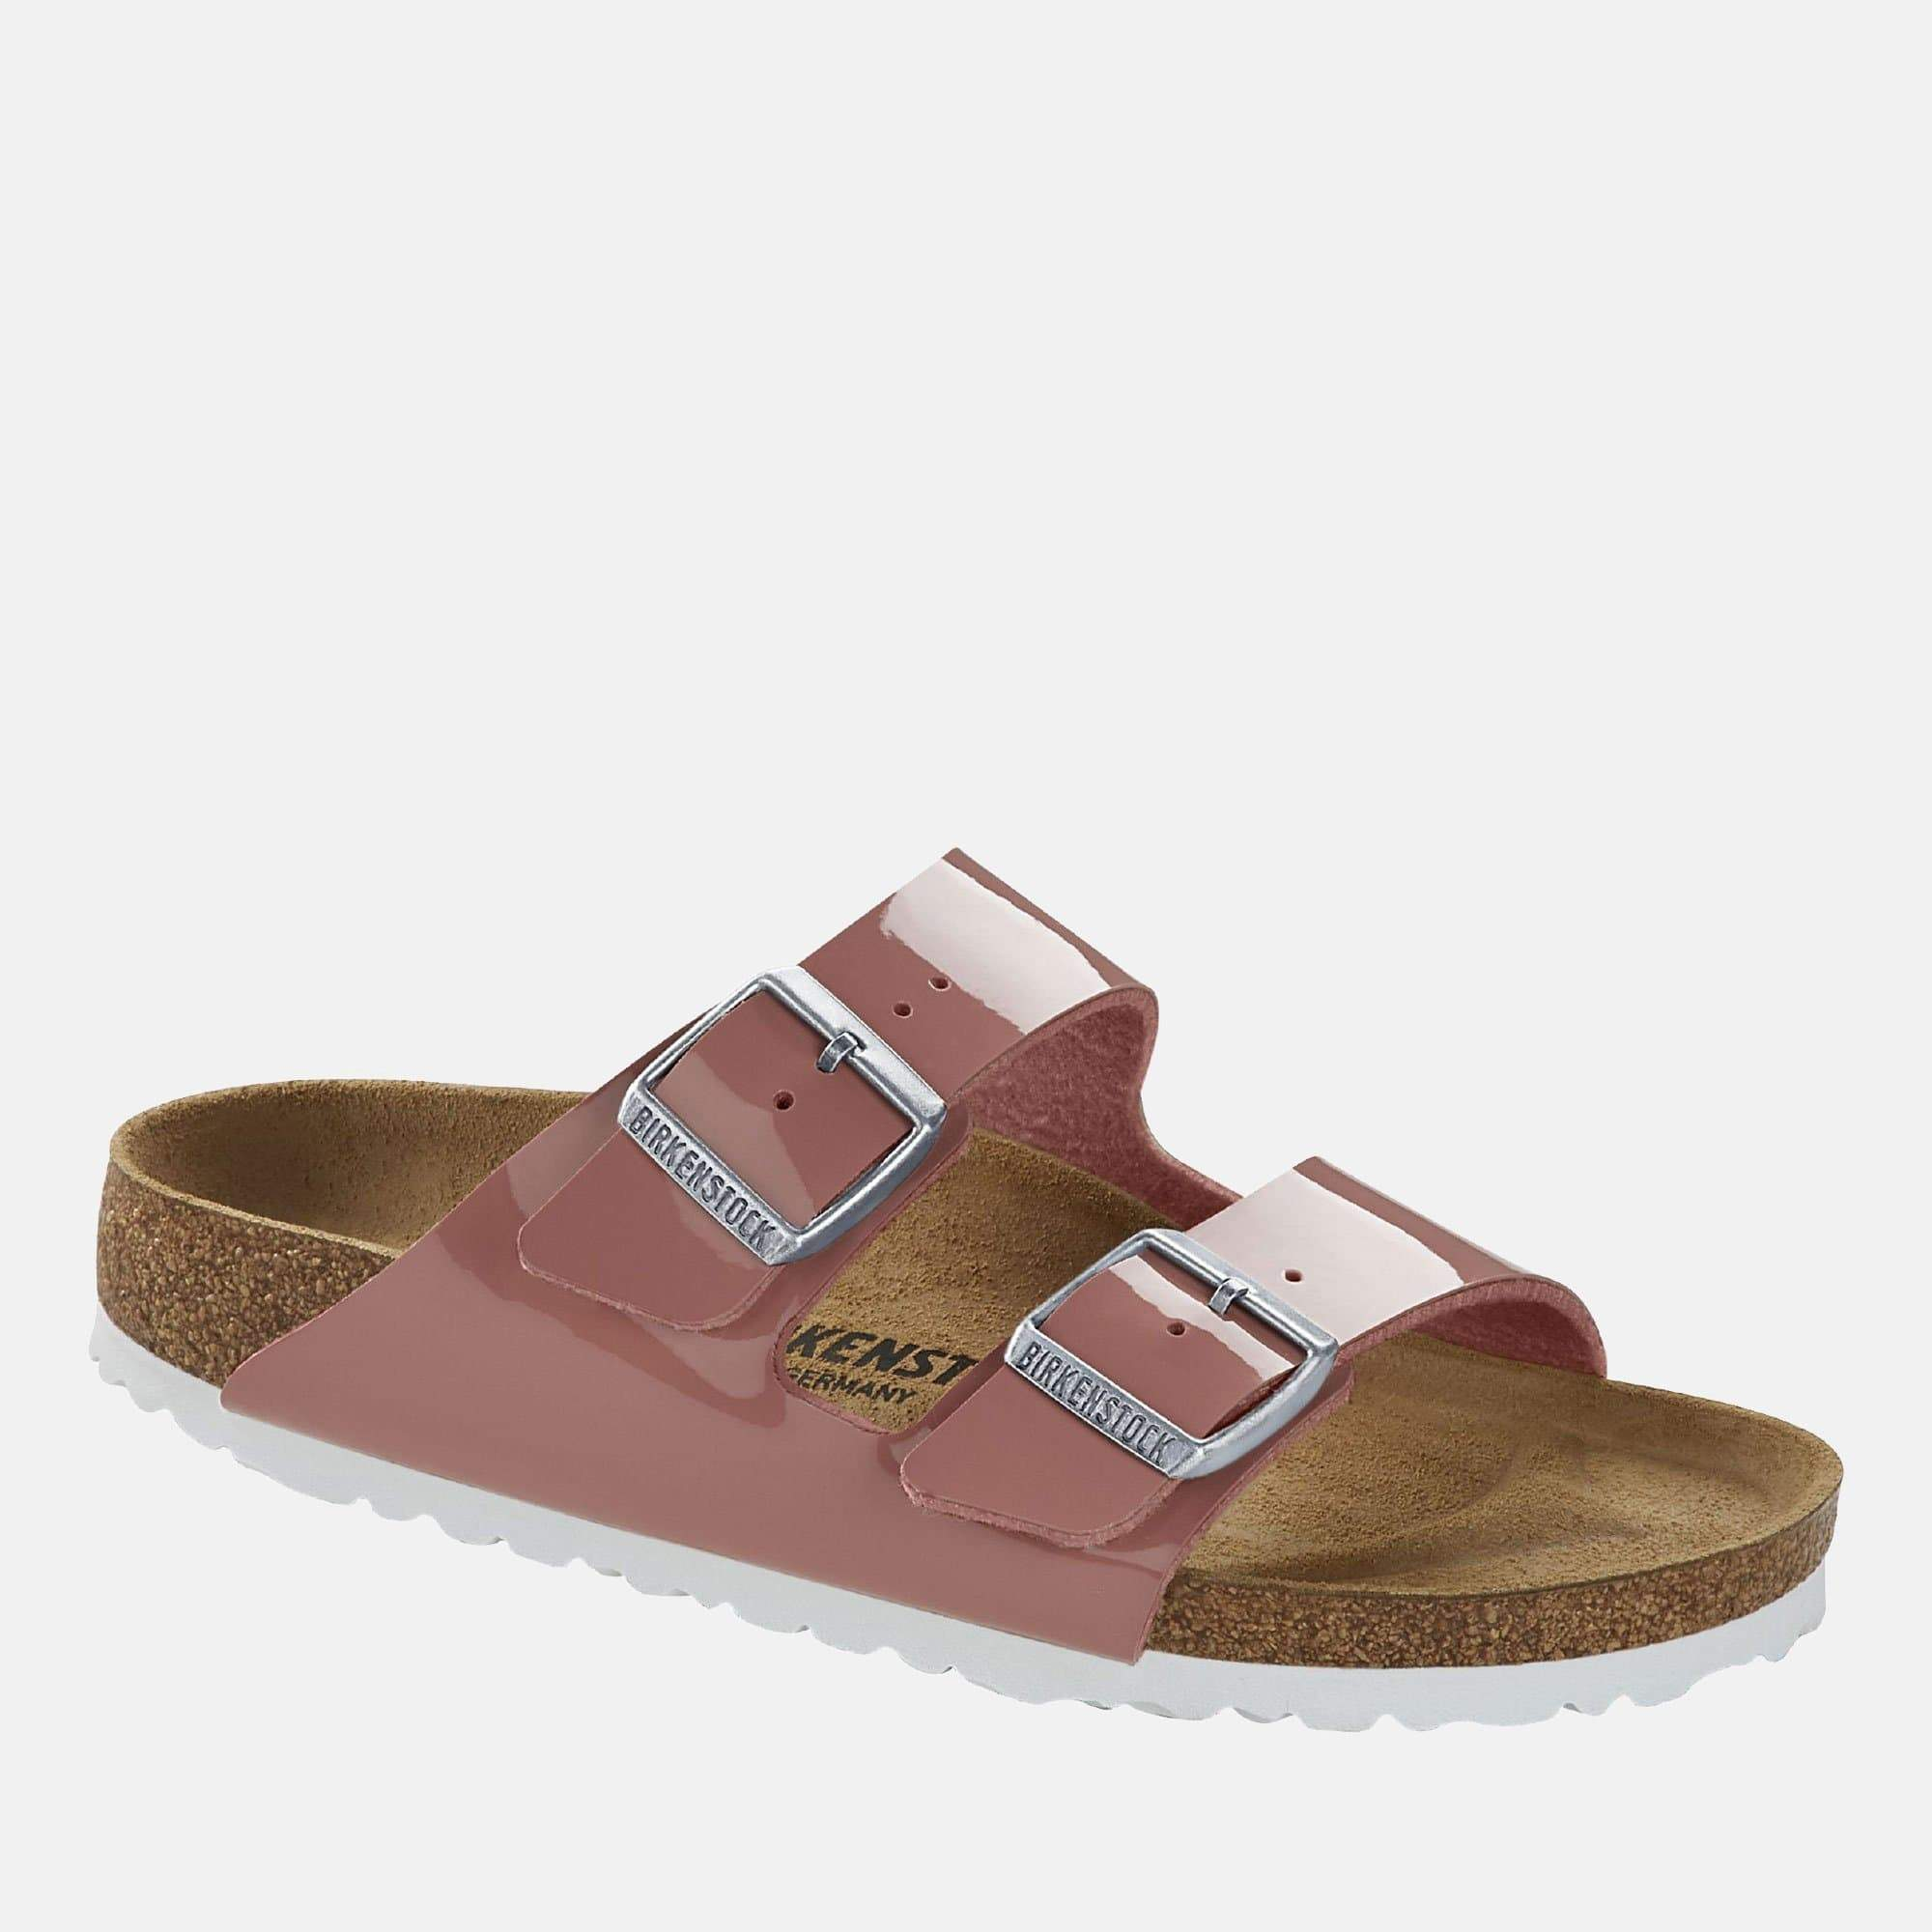 Birkenstock Footwear Arizona Narrow Fit Patent Old Rose 1016071